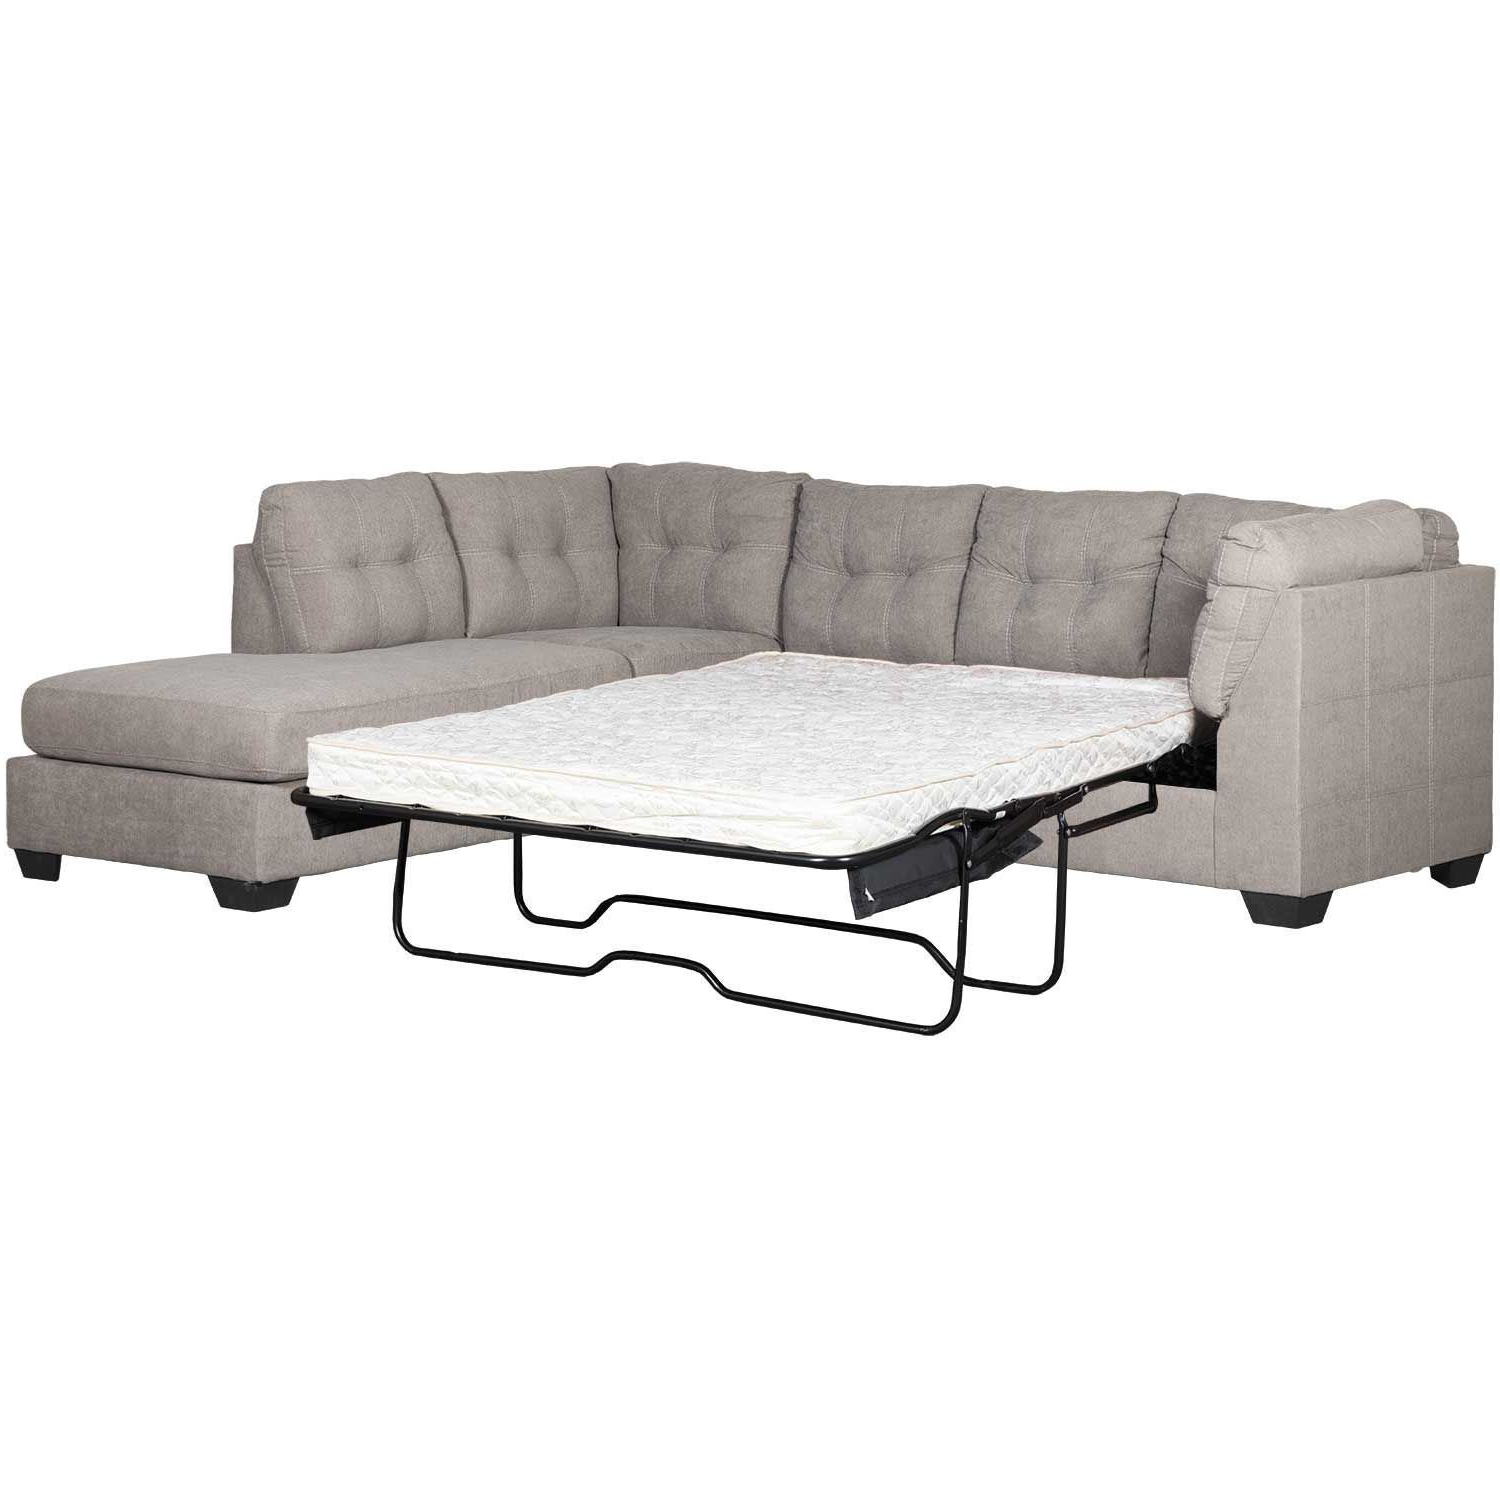 Mercury Right Arm Facing Innerspring Queen Regarding Well Known Lucy Grey 2 Piece Sleeper Sectionals With Raf Chaise (View 10 of 20)